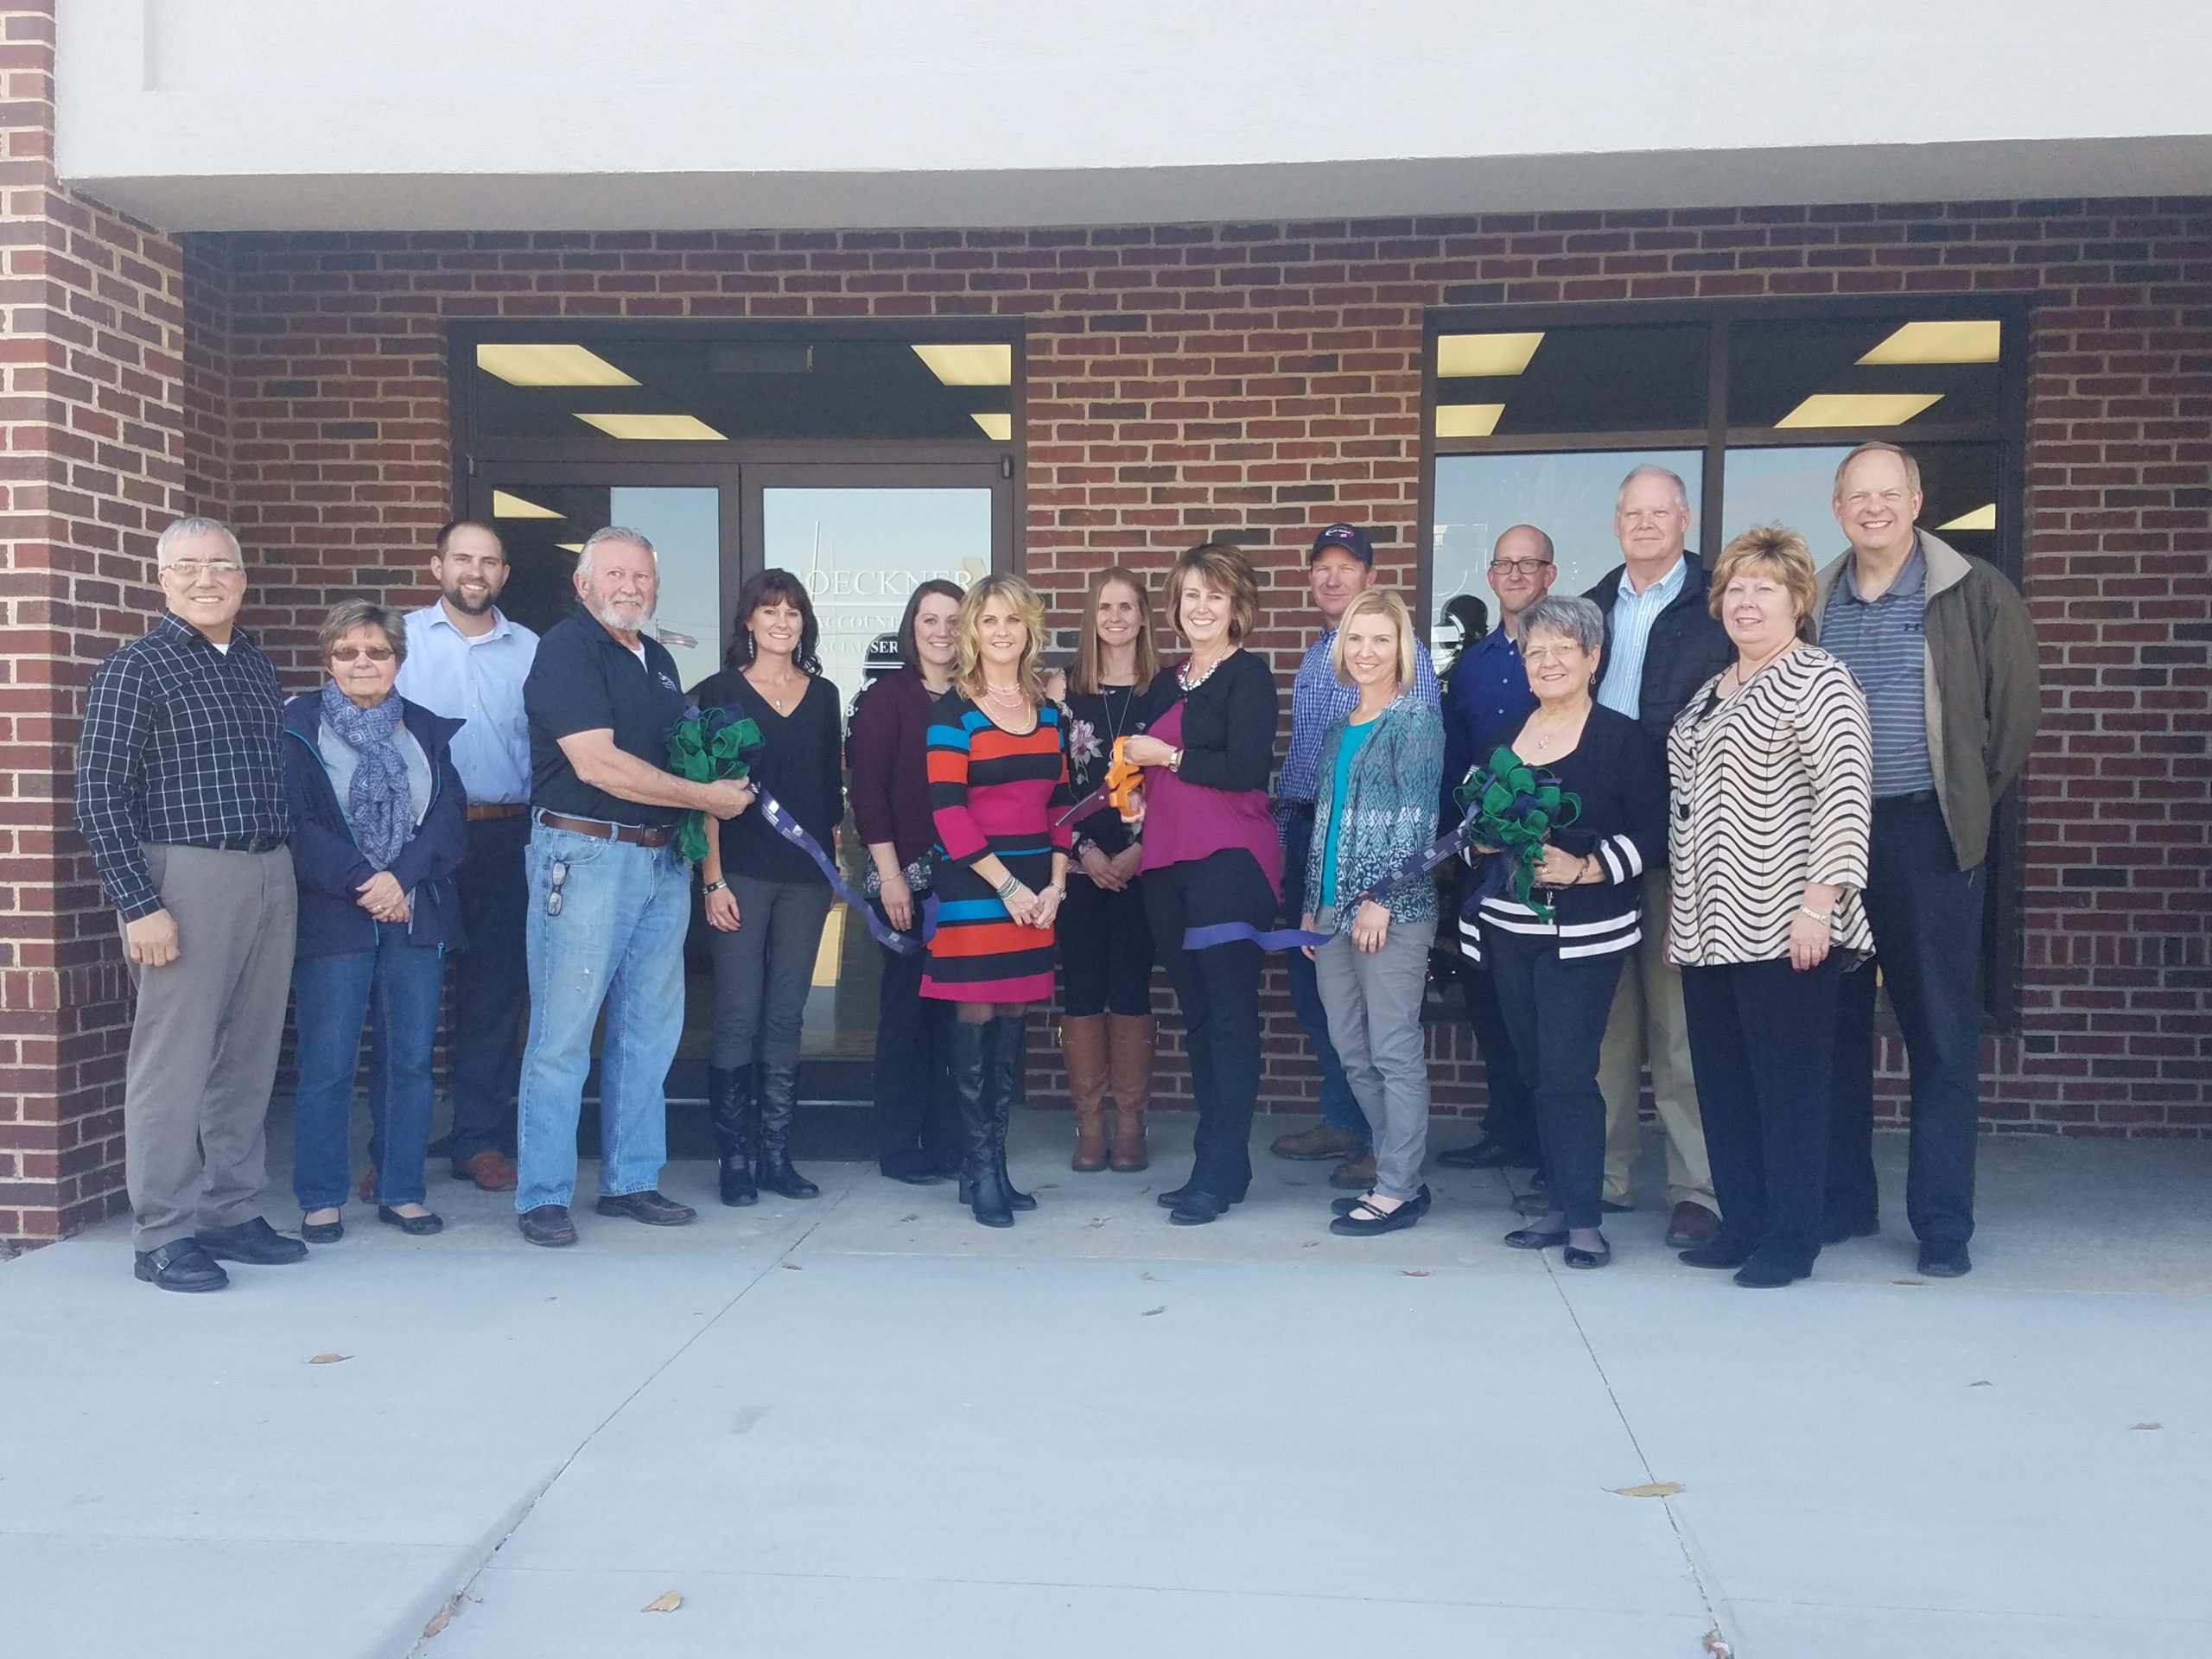 Goeckner Accounting Holds Ribbon Cutting for Expansion to Their Office